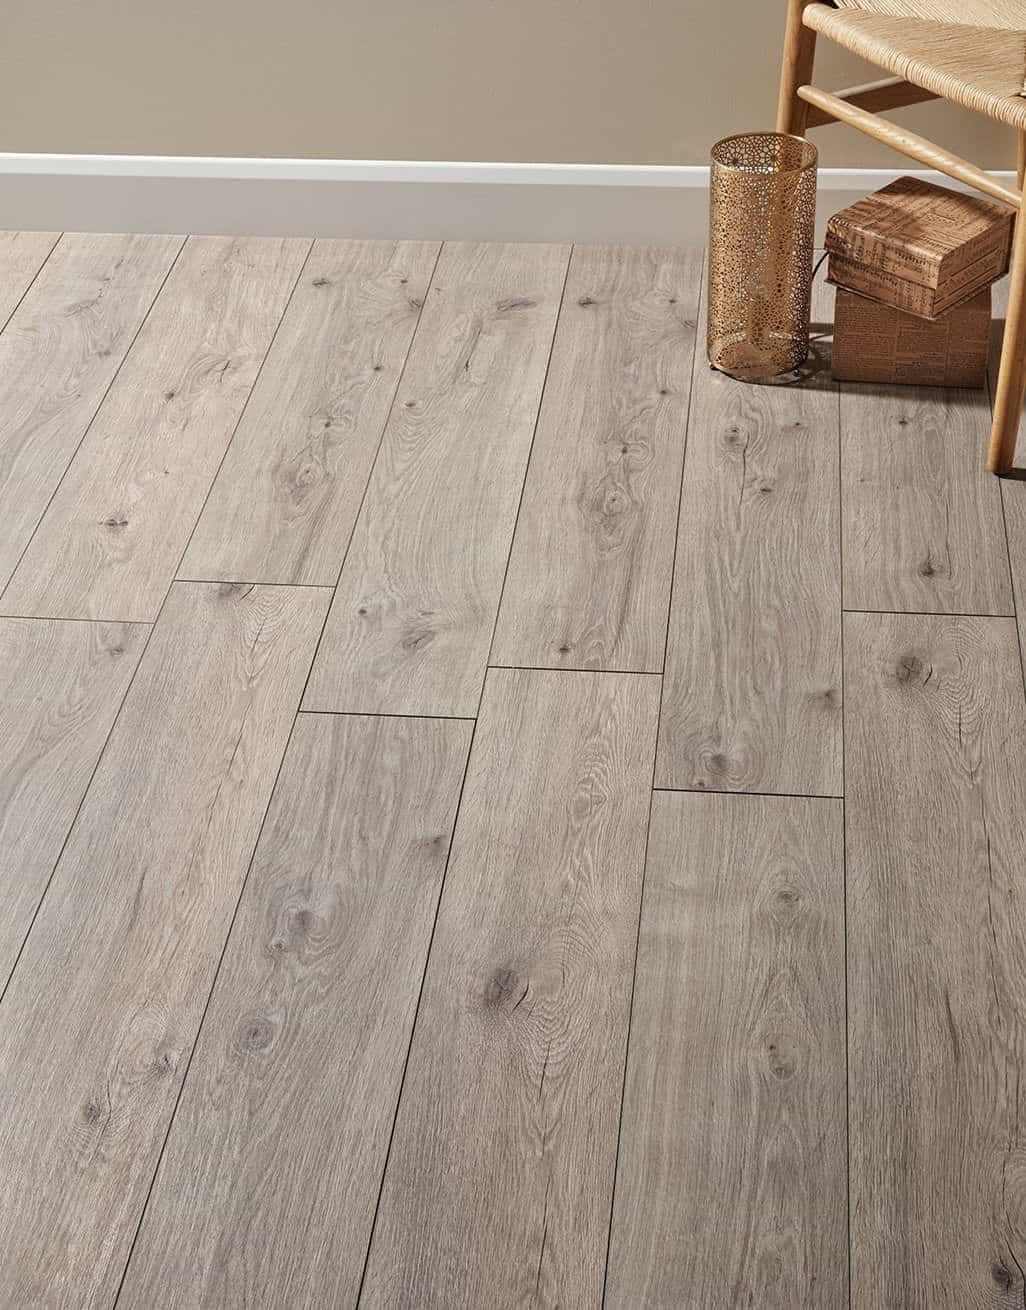 Laminate Wood Flooring For Your Home